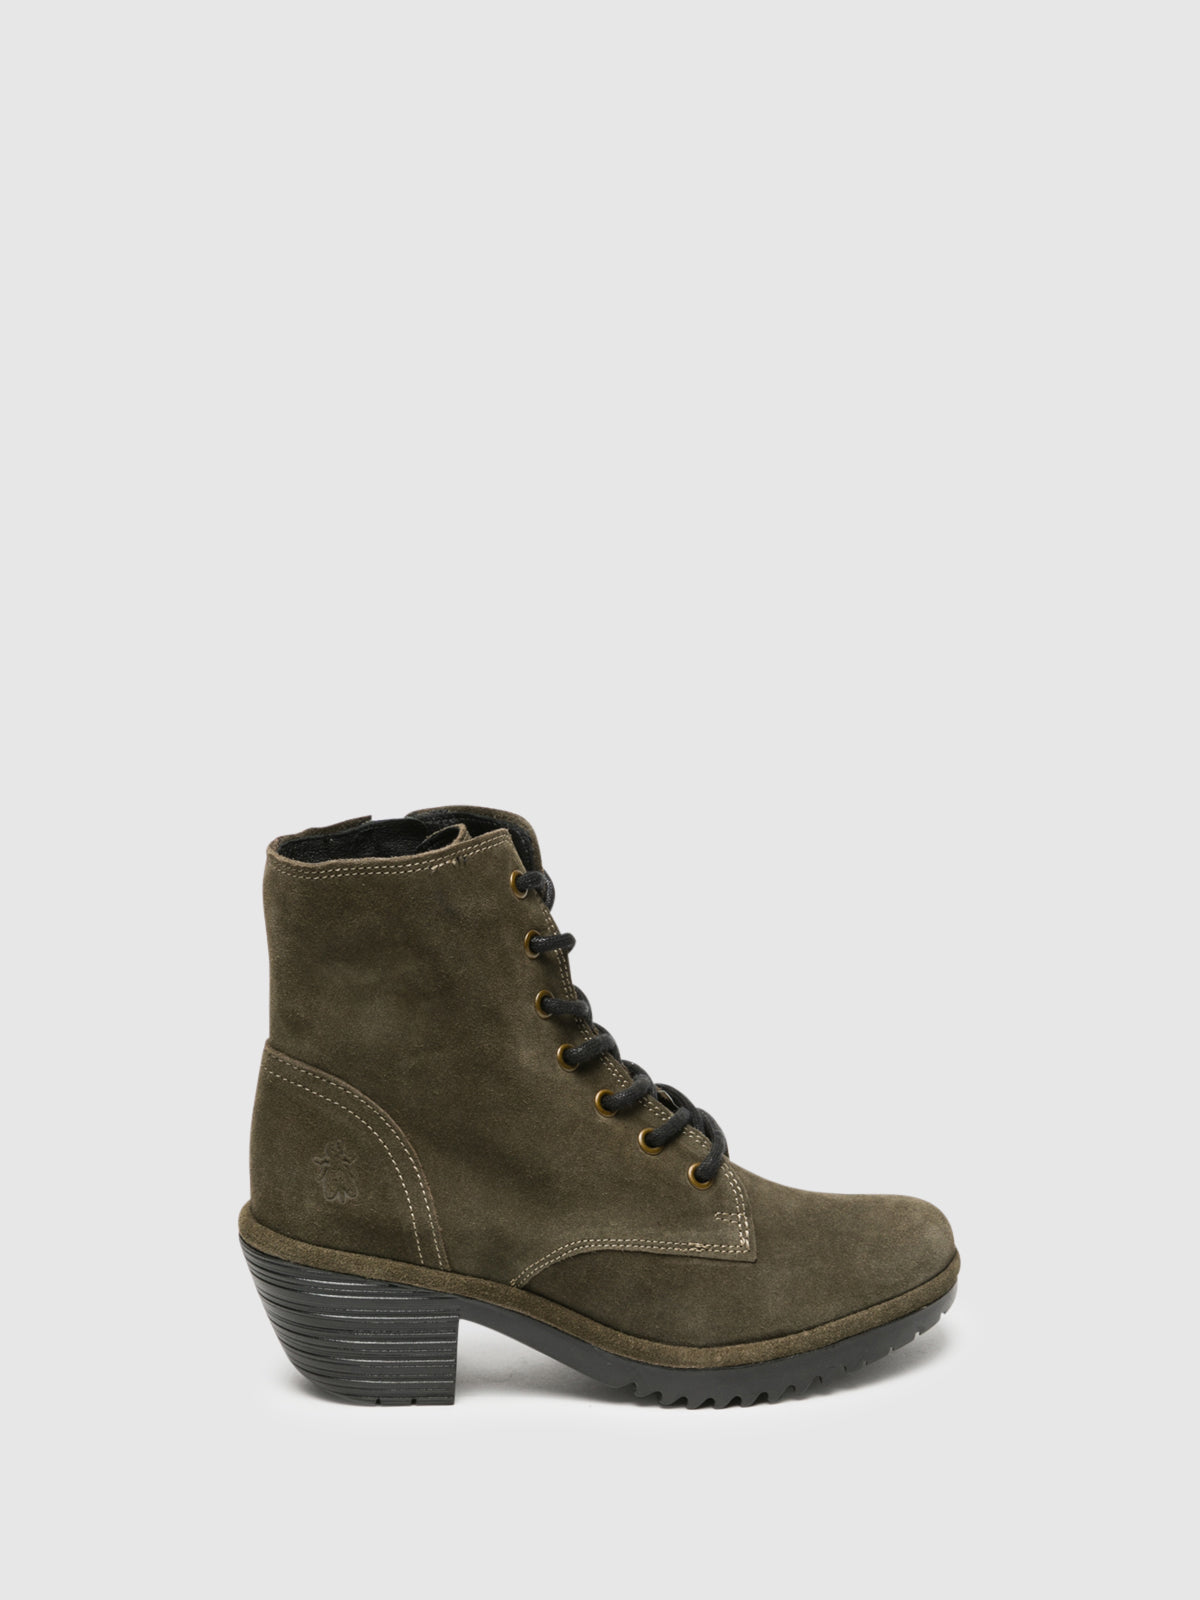 Fly London Khaki Lace-up Ankle Boots